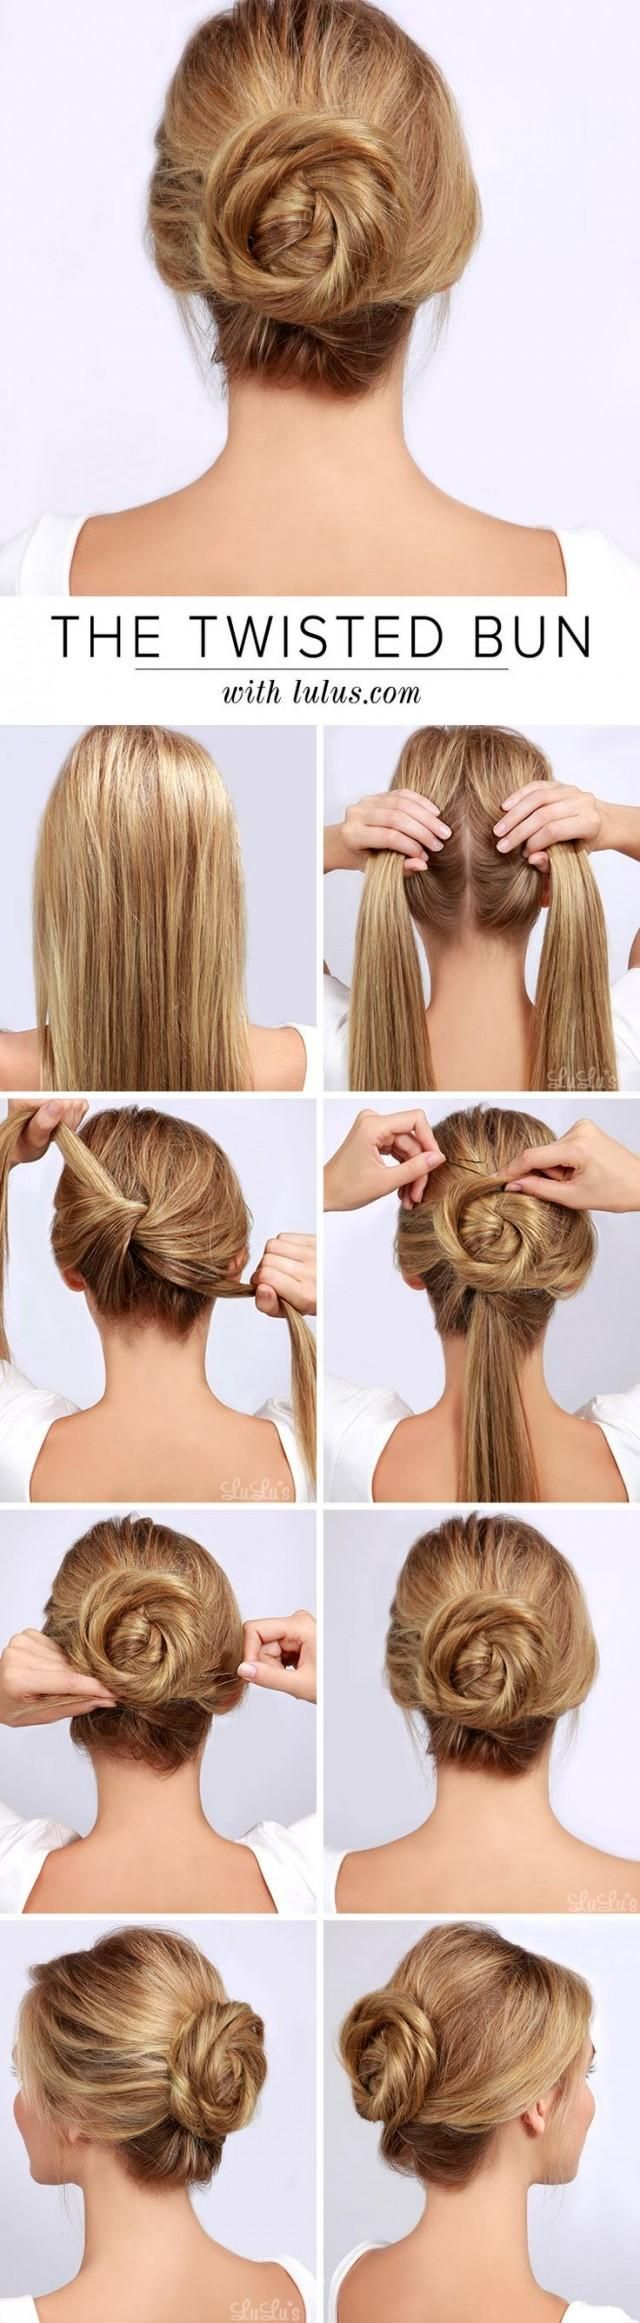 Cute Hair Styles - I'd love to try this! I think it'd be super cute like for a party or date (somewhere that requires some formality, but not a ton)